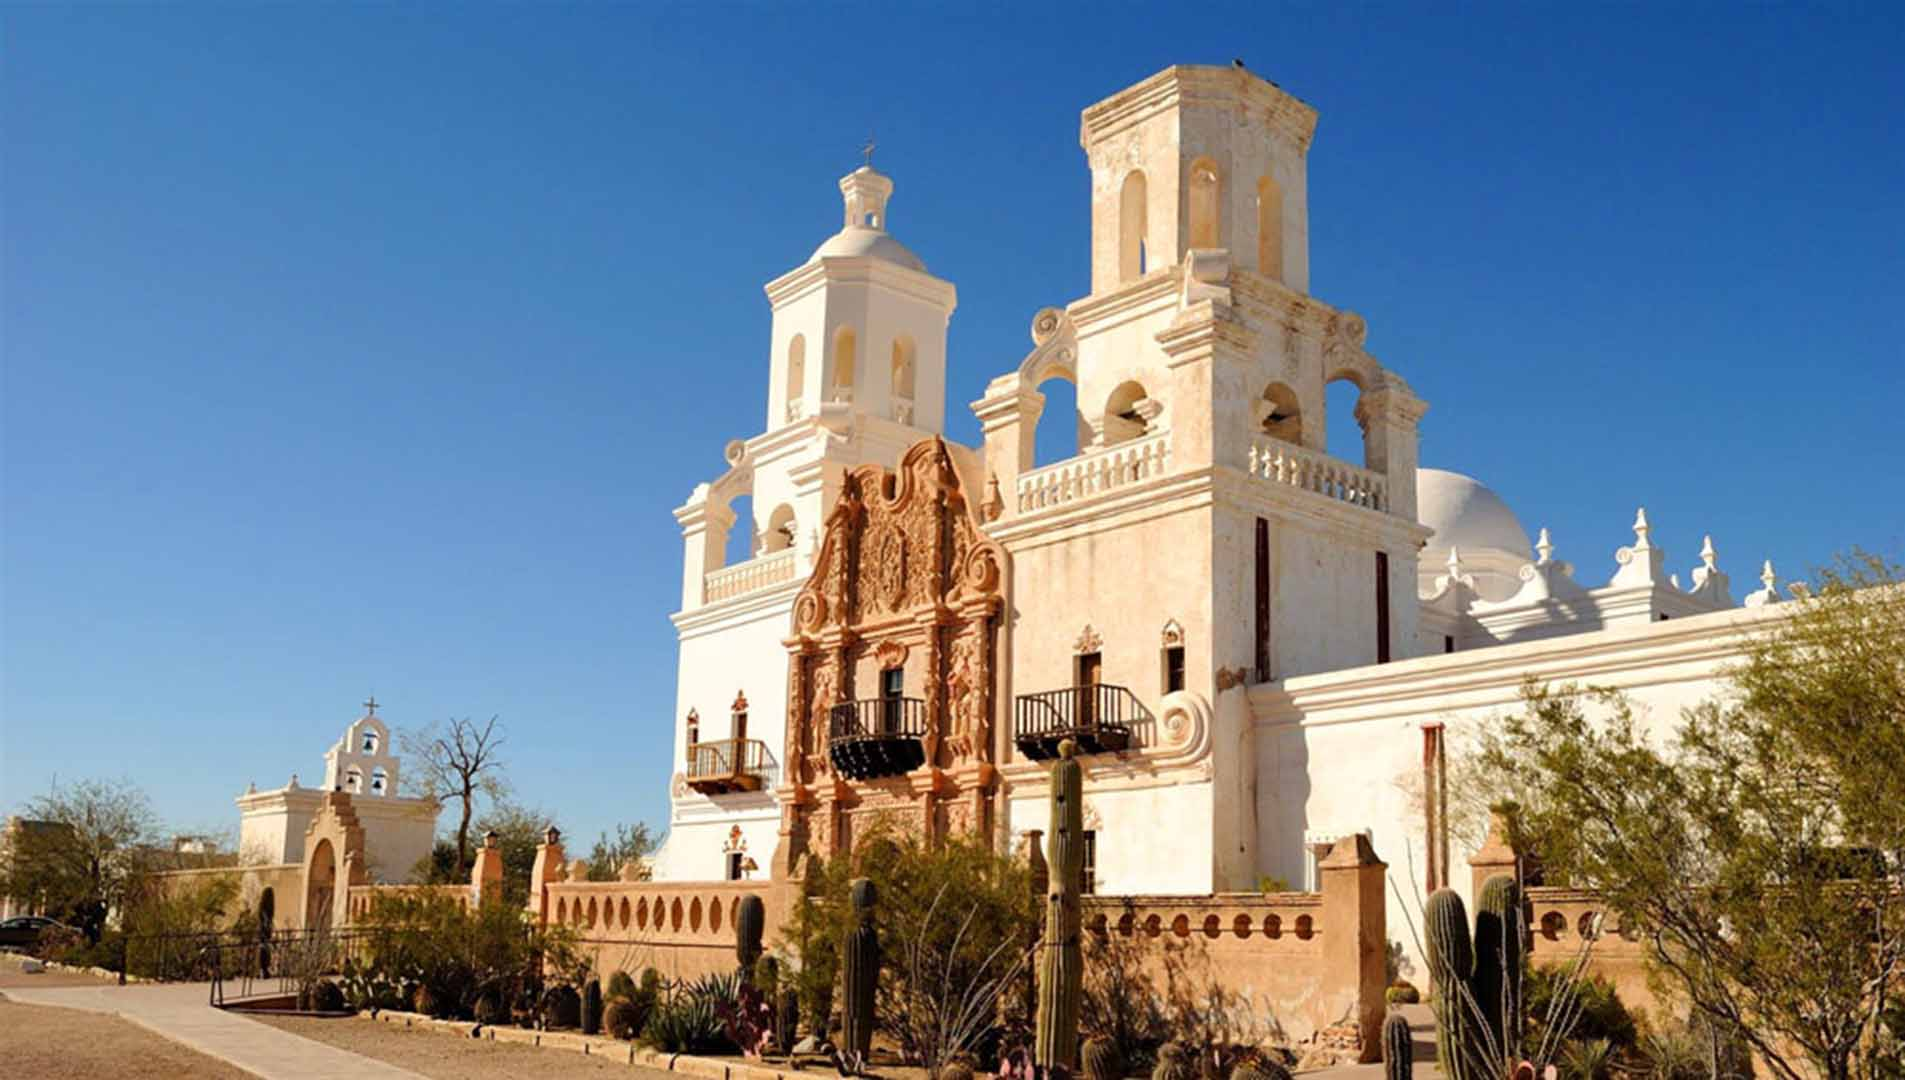 The mission San Xavier del Bac, the white dove of the desert. A preserved Spanish colonial chapel.